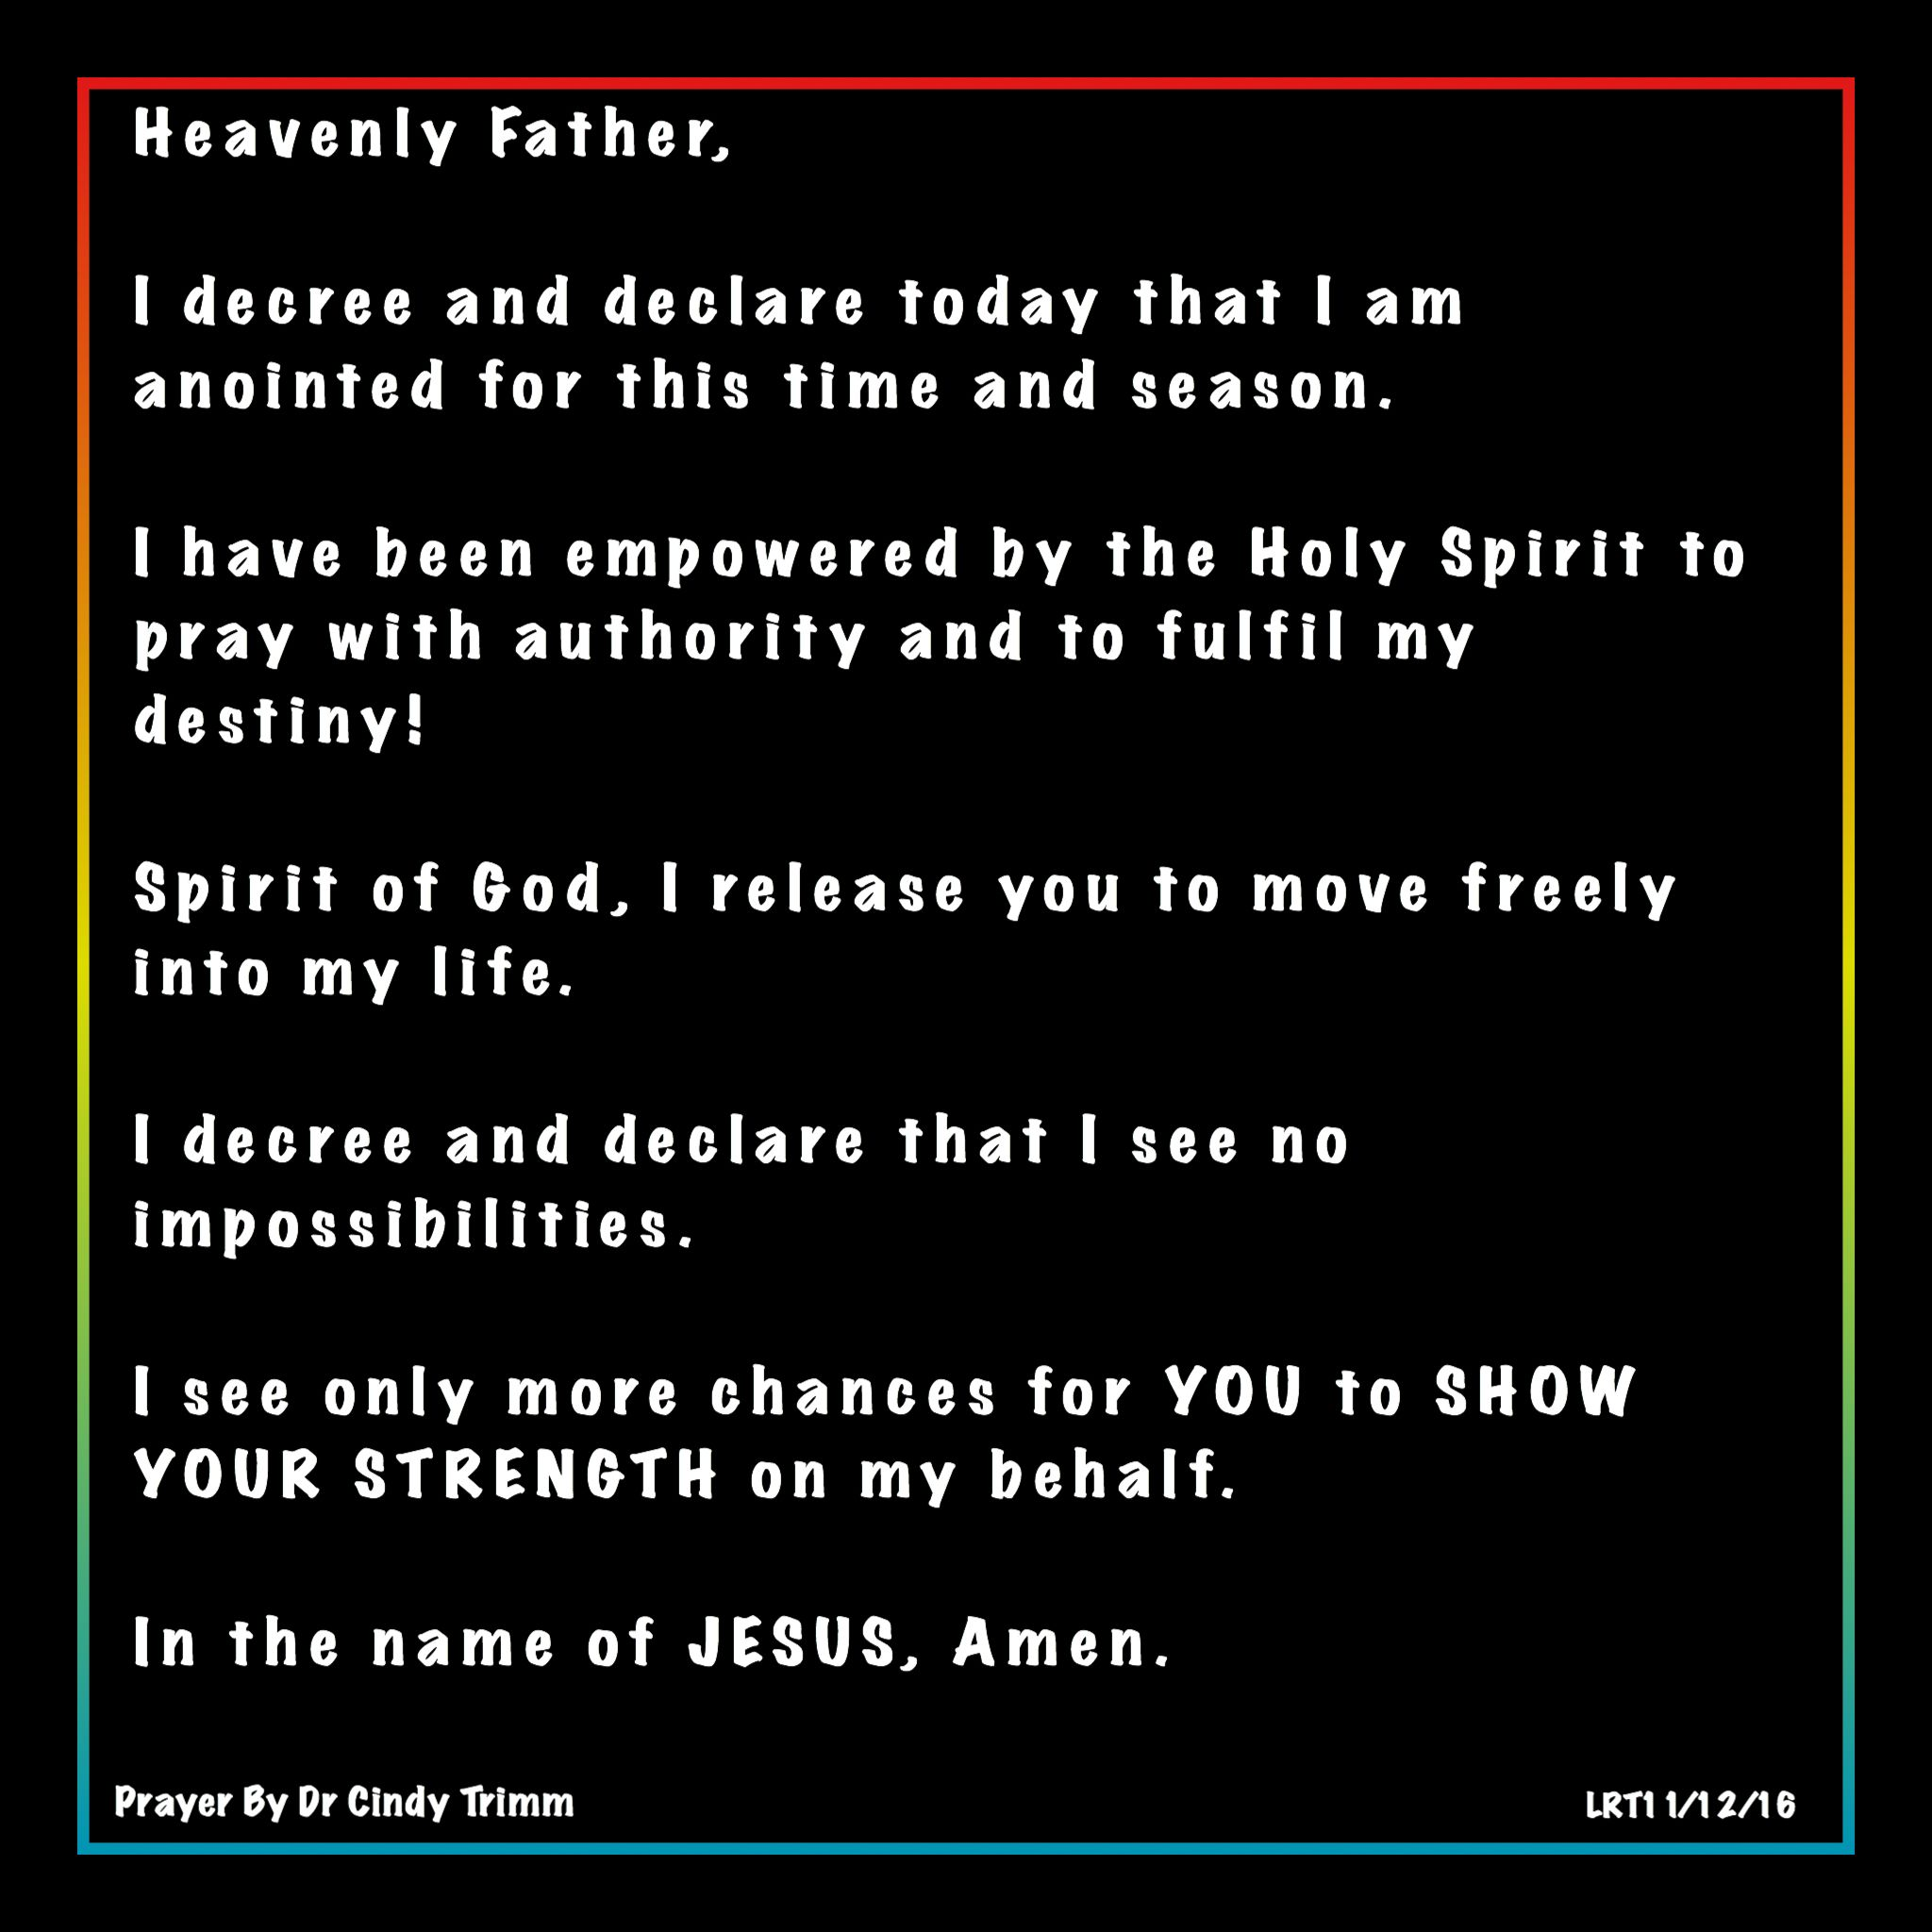 Heavenly Father, I decree and declare today that I am